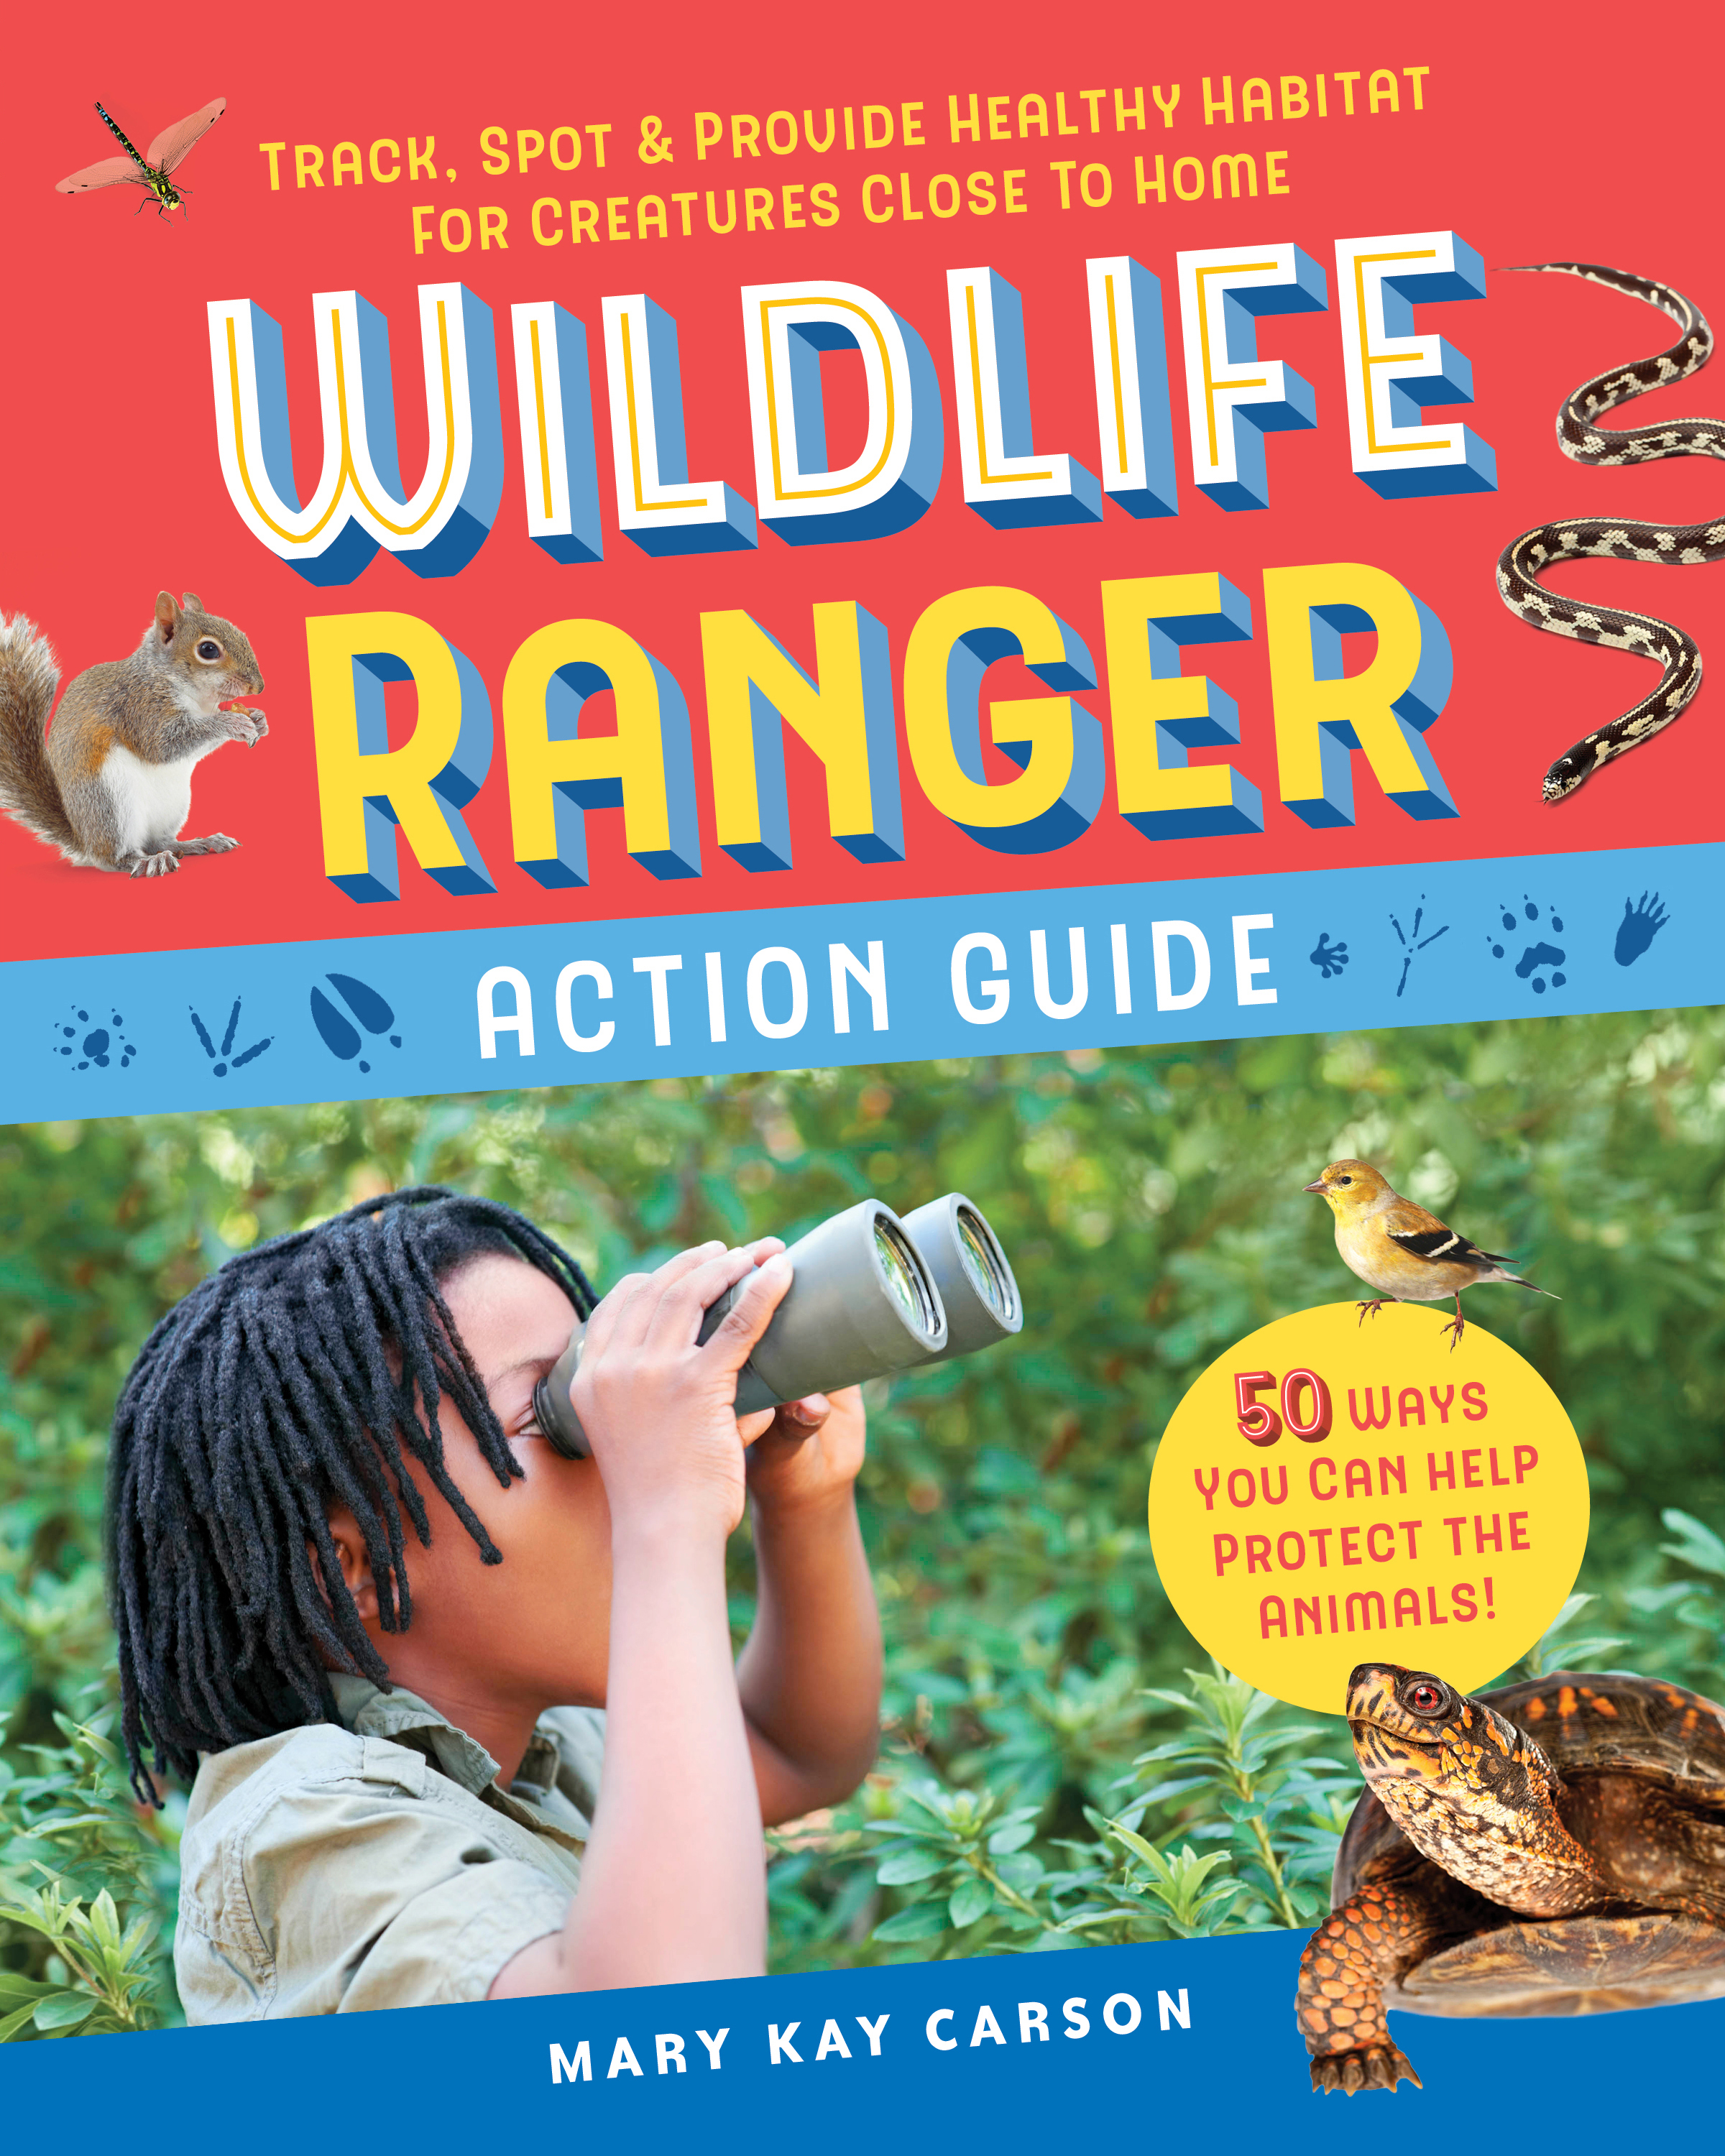 Wildlife Ranger Action Guide Track, Spot & Provide Healthy Habitat for Creatures Close to Home - Mary Kay Carson